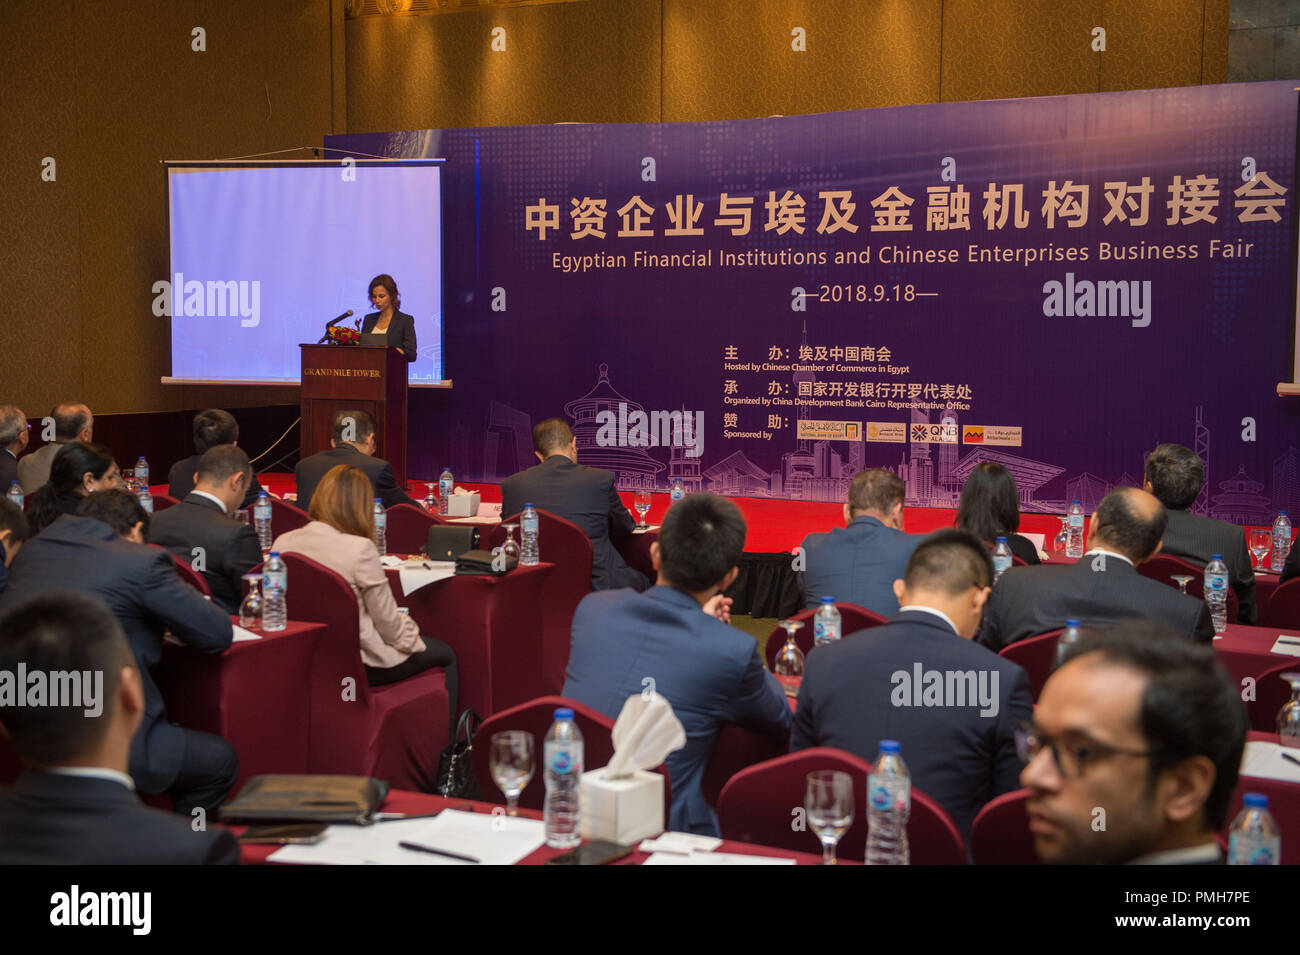 (180918) -- CAIRO, Sept. 18, 2018 (Xinhua) -- Representatives of Egyptian and foreign banks and Chinese companies attend the seminar 'Egyptian Financial Institutions and Chinese Enterprises Business Fair' in Cairo, Egypt, Sept. 18, 2018. China Development Bank (CDB), the largest Chinese bank for foreign investment and financing cooperation, expressed Tuesday its confidence in the Egyptian economy and the economic reform program the Egyptian government launched. (Xinhua/Meng Tao) - Stock Image